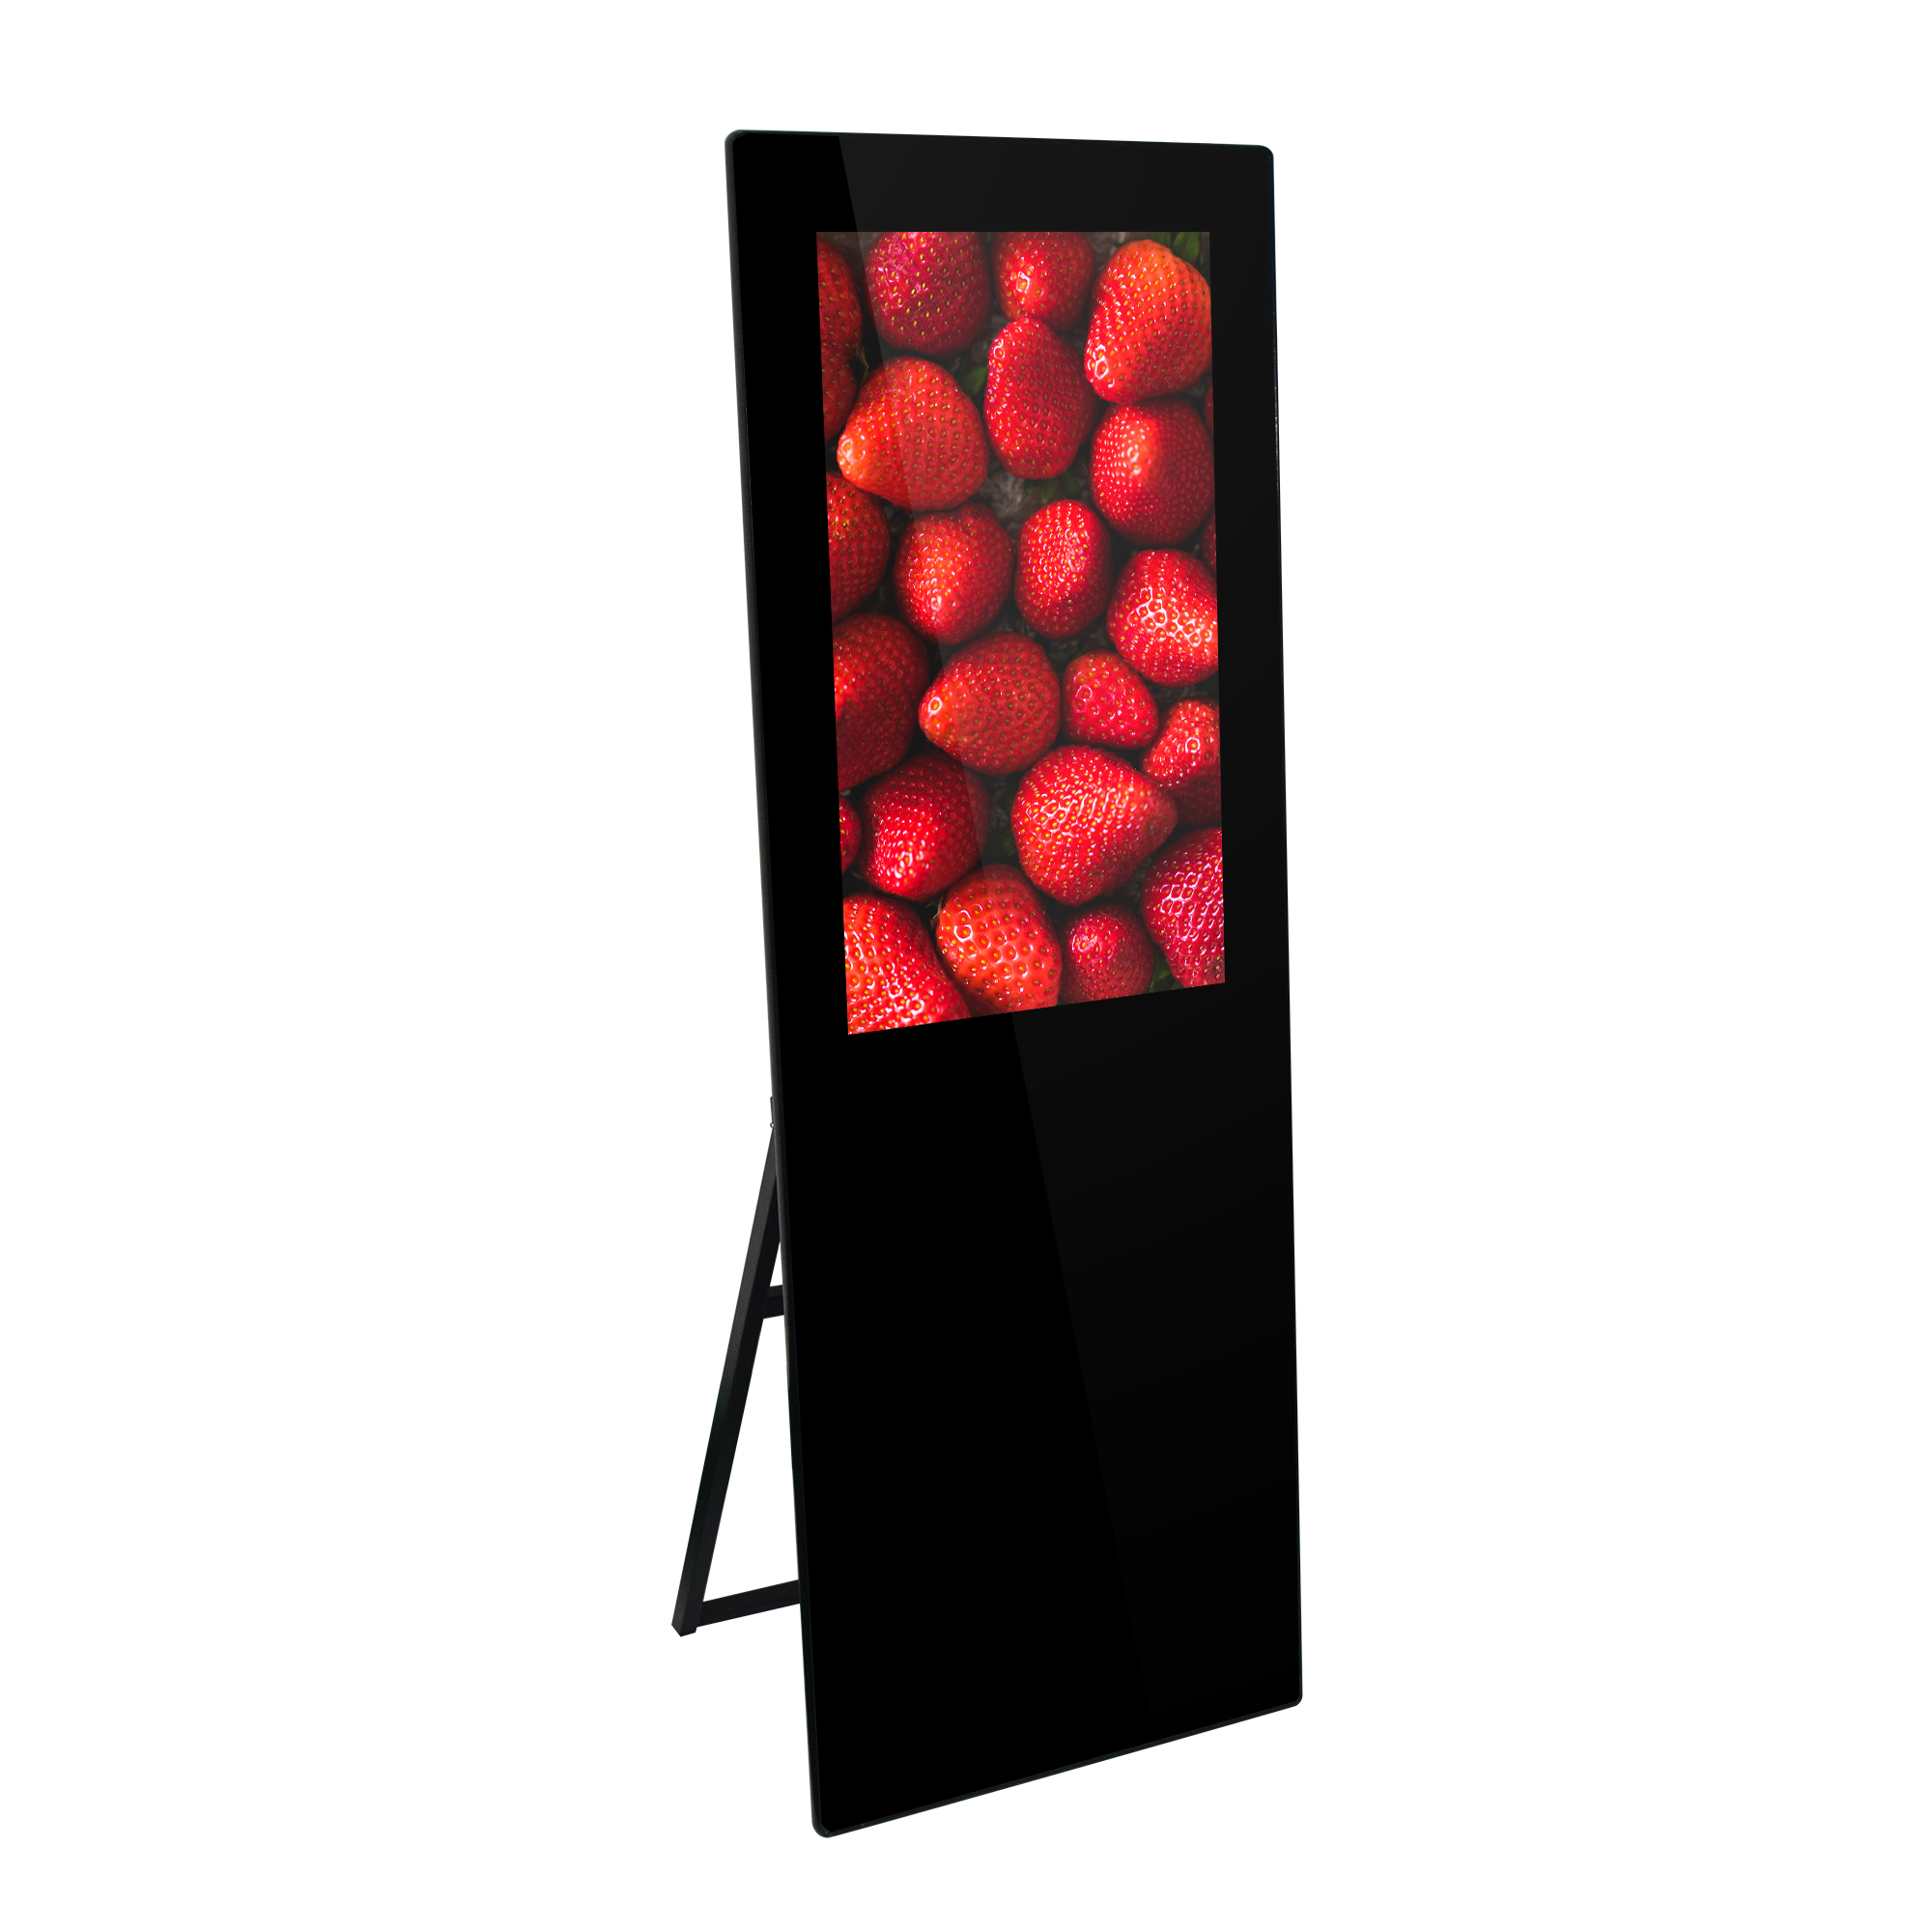 Nusilkoad Landscape Floor Standing AD Display LG Samsung LED Screen Featured Image